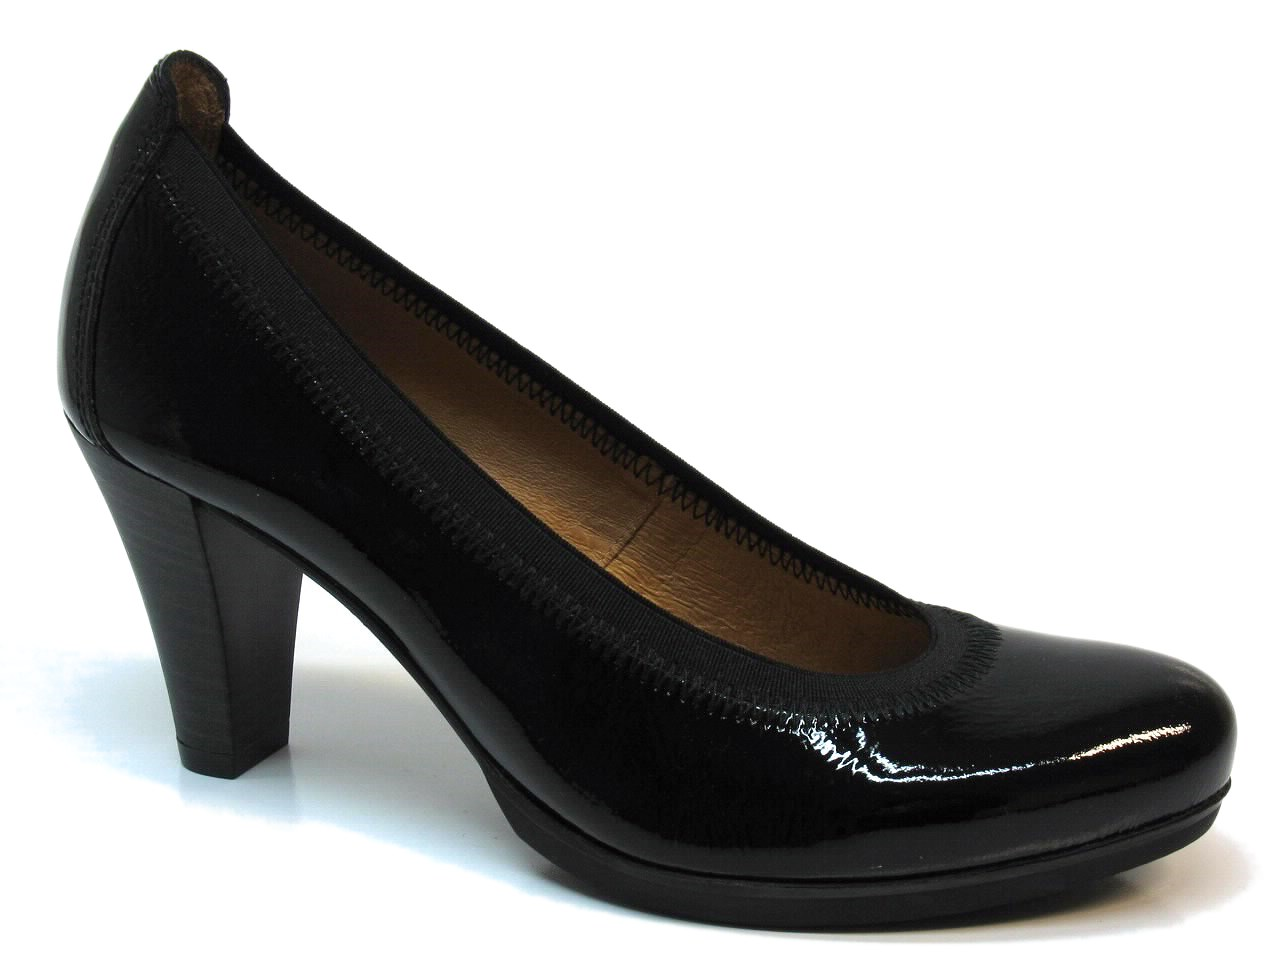 Pumps Hispanitas - 165 HV37179